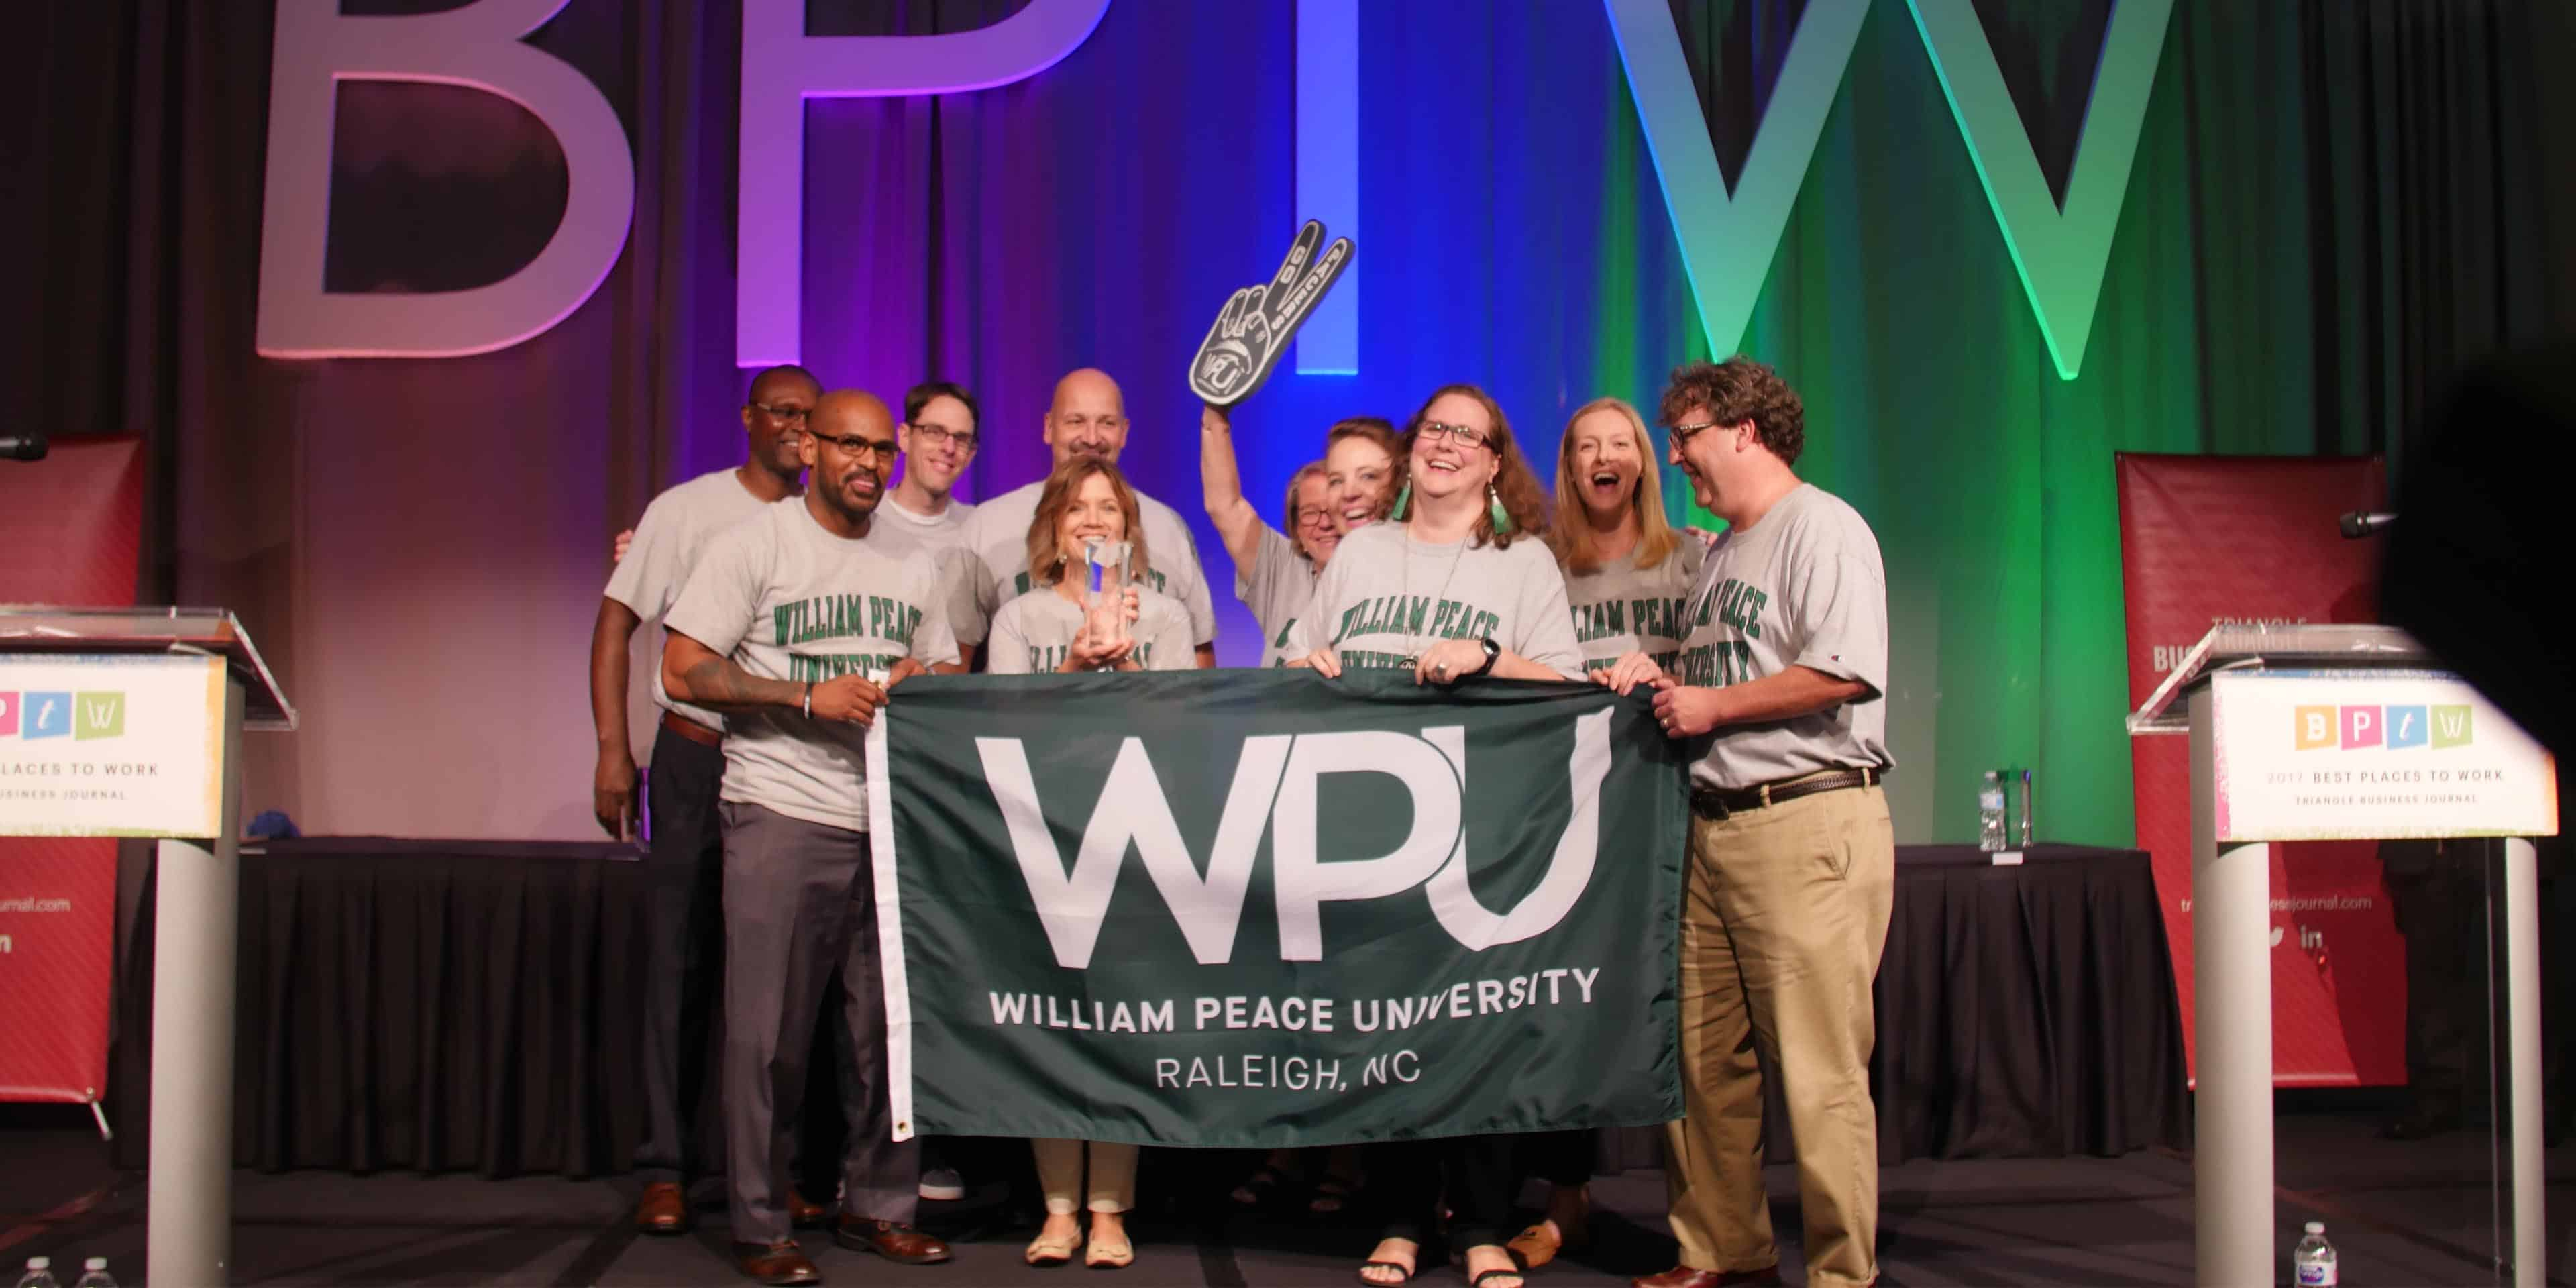 WPU is a Best Place to Work